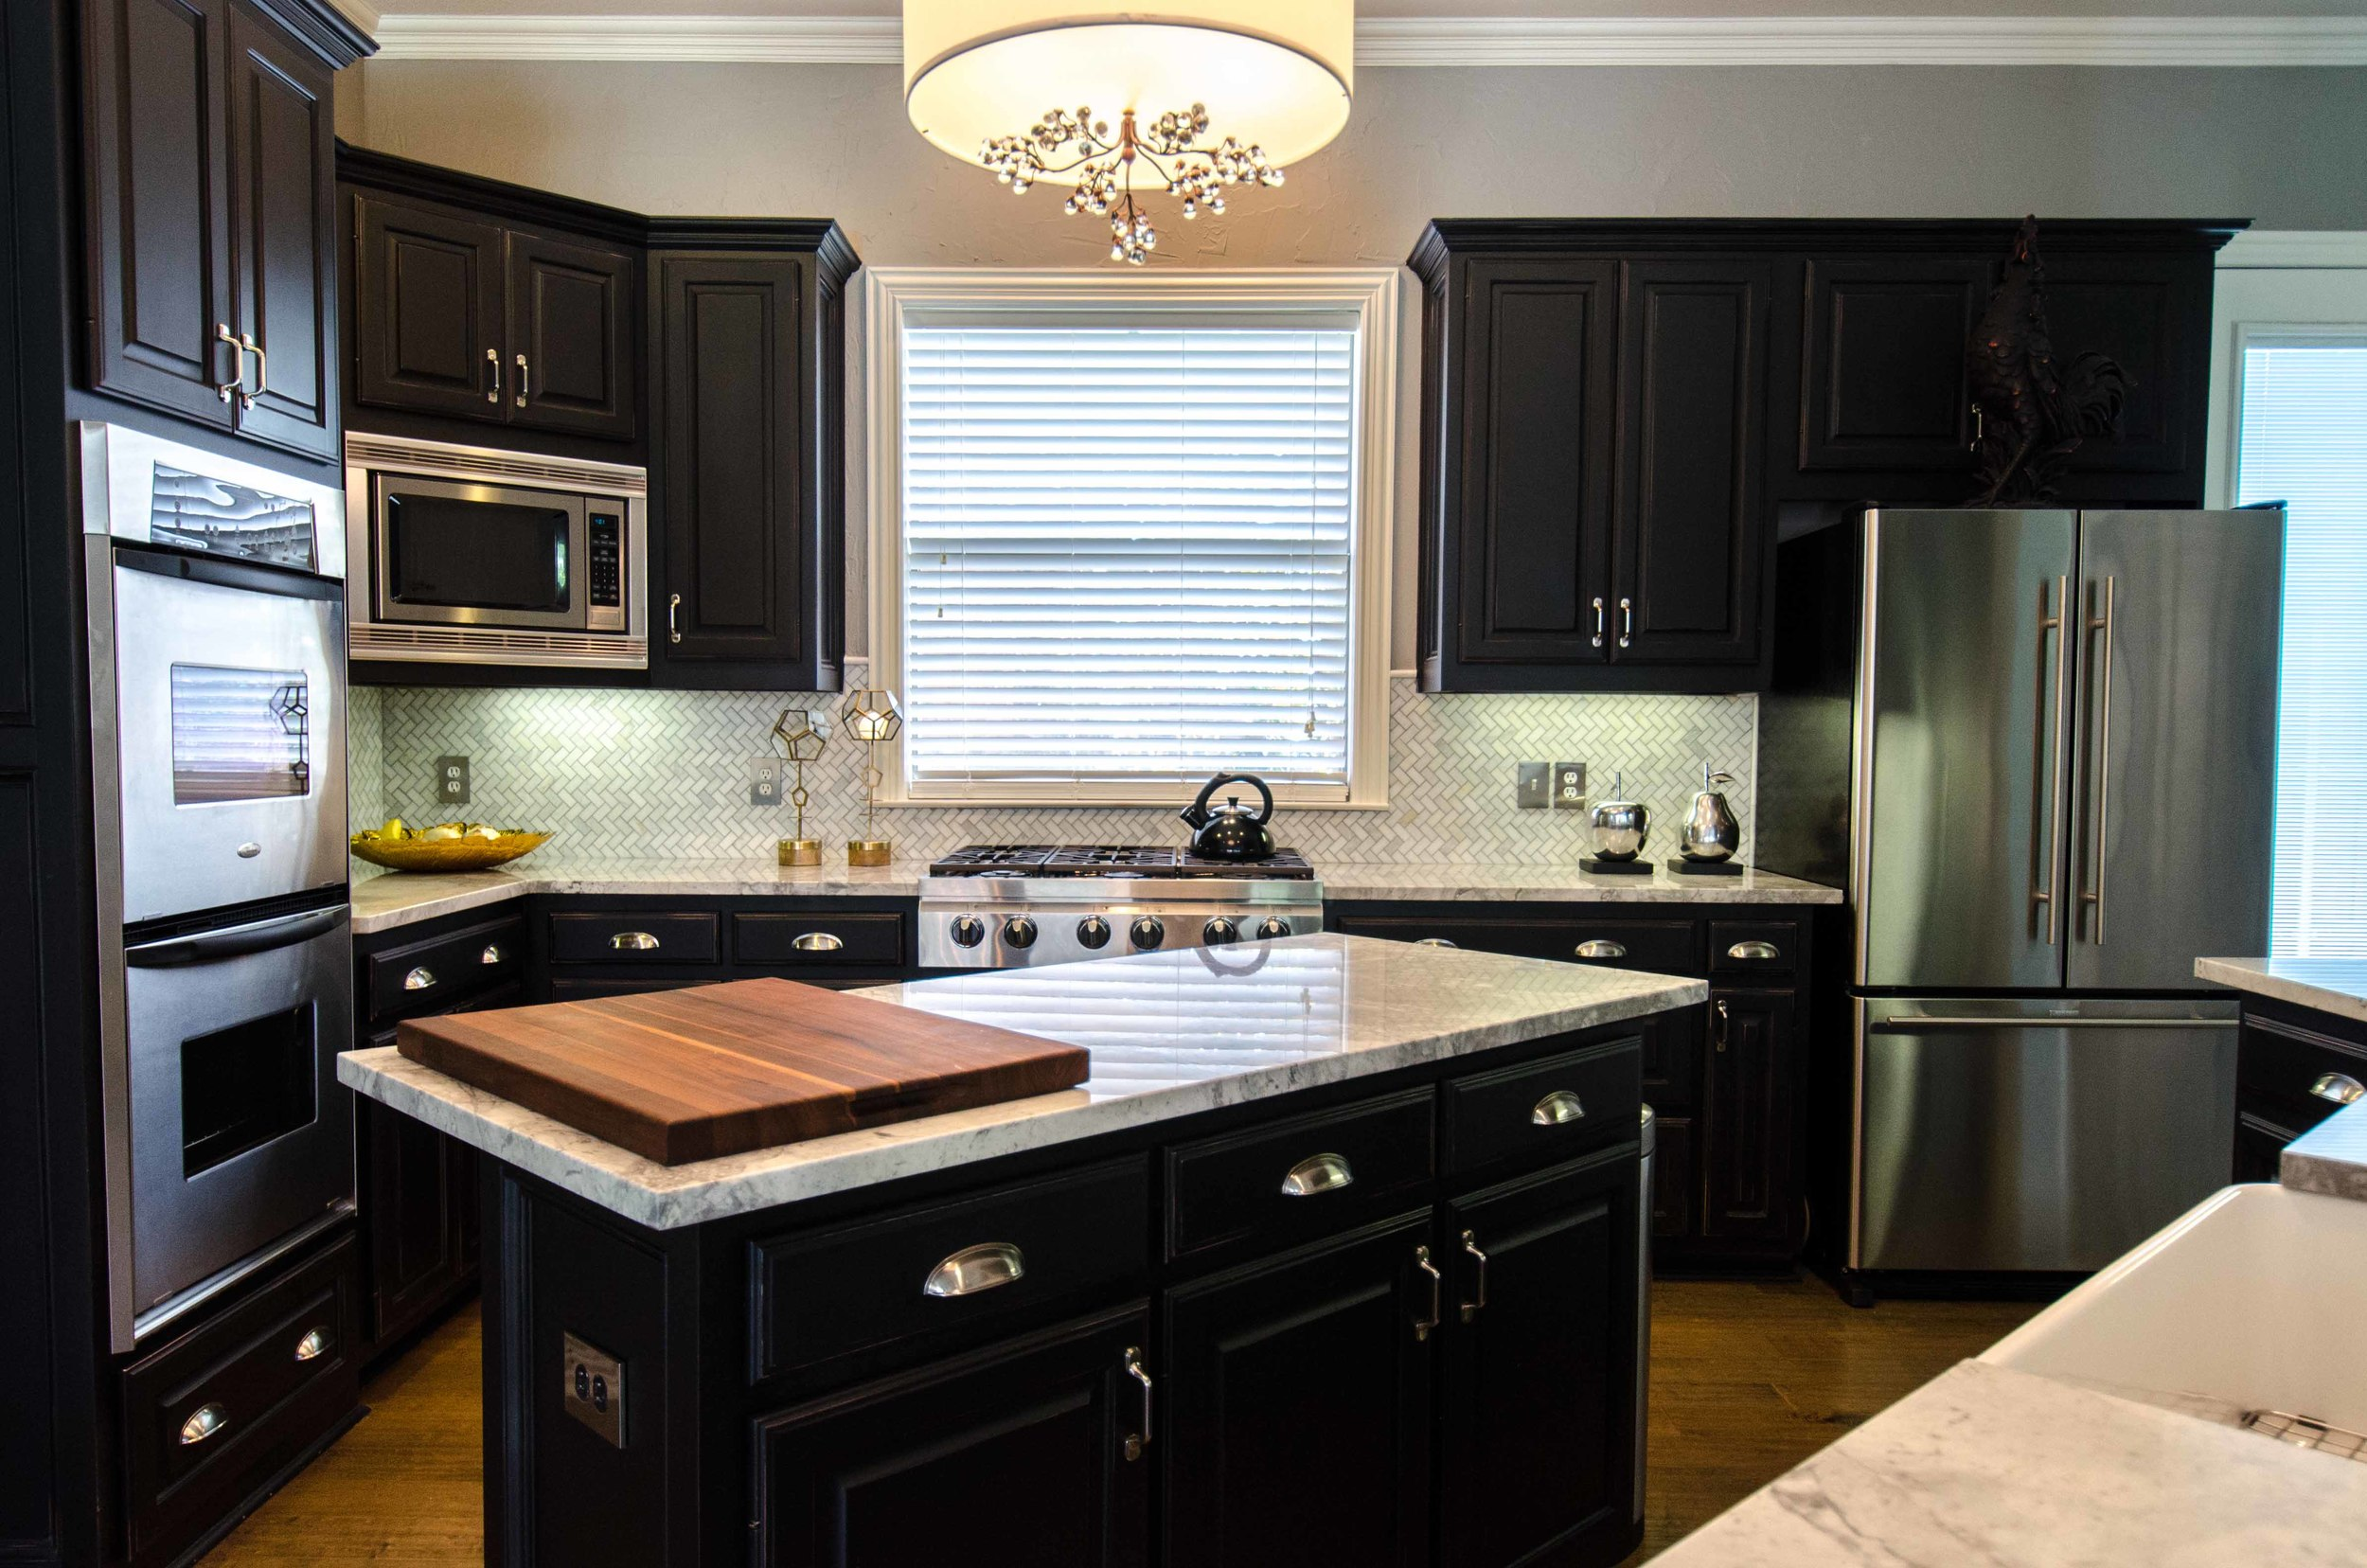 Traditional classic kitchen with window above sink